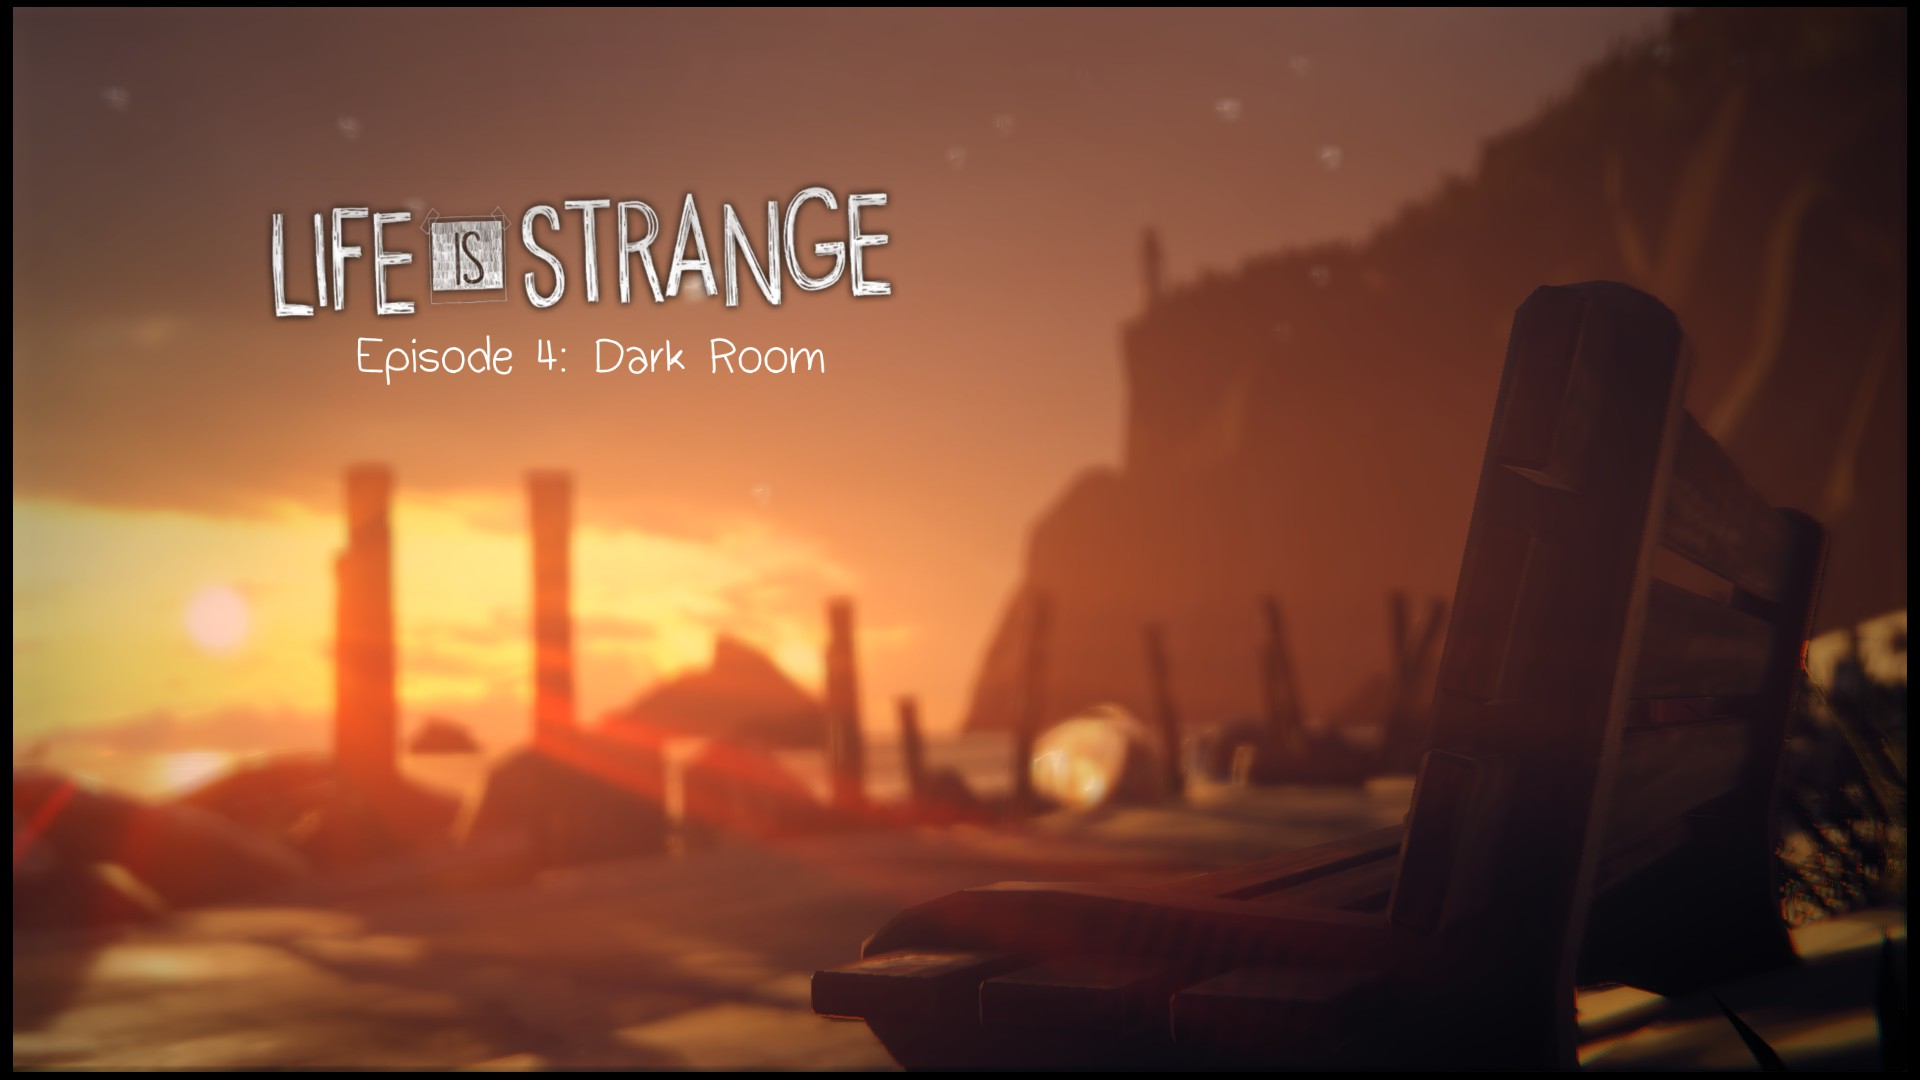 life is strange episode 4: dark room